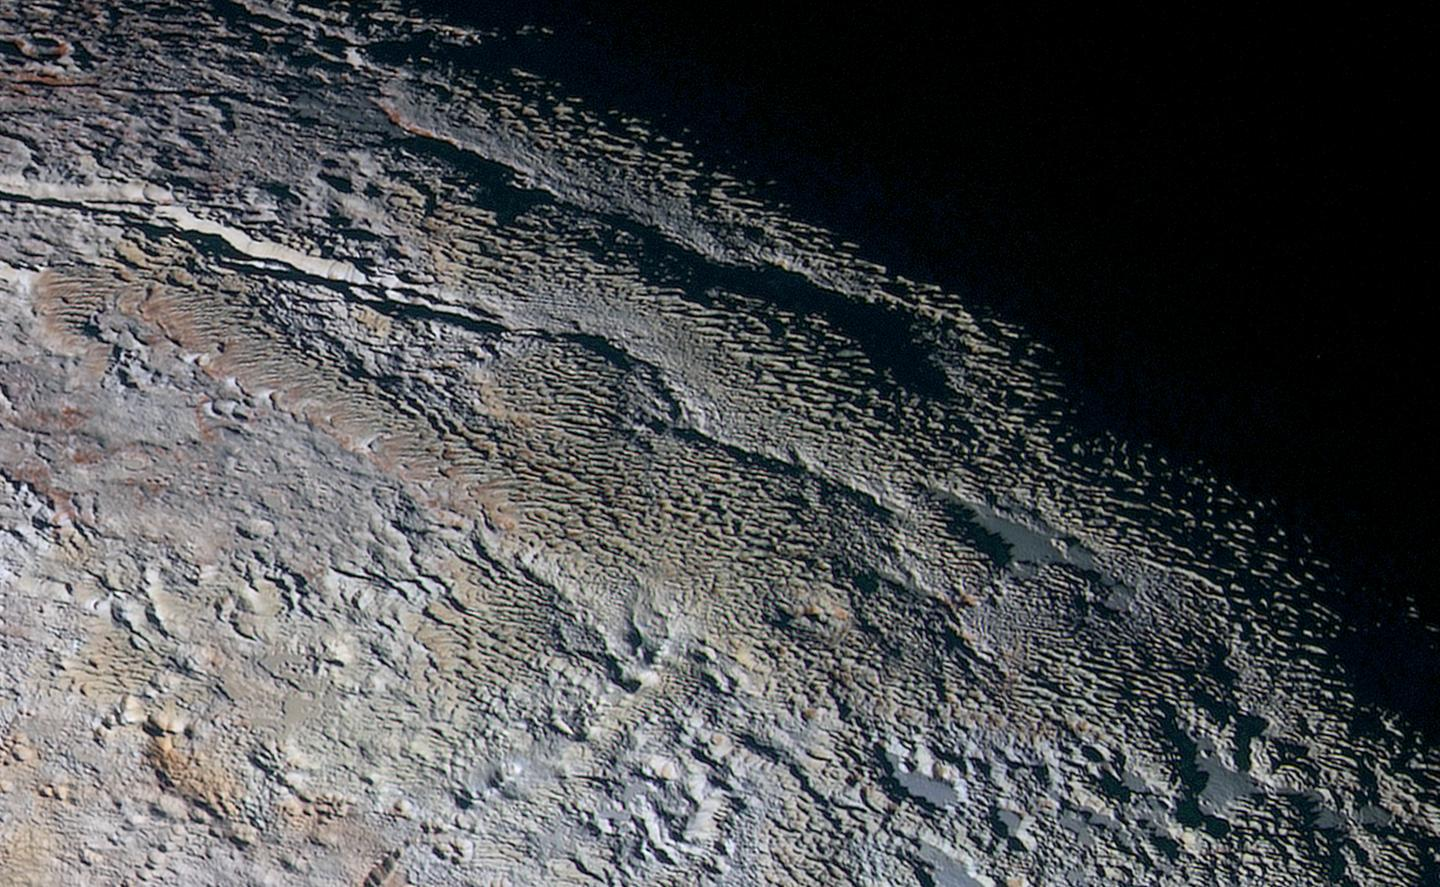 High resolution image of the Tartarus Dorsa mountain range spanning 330 miles (530 km) across